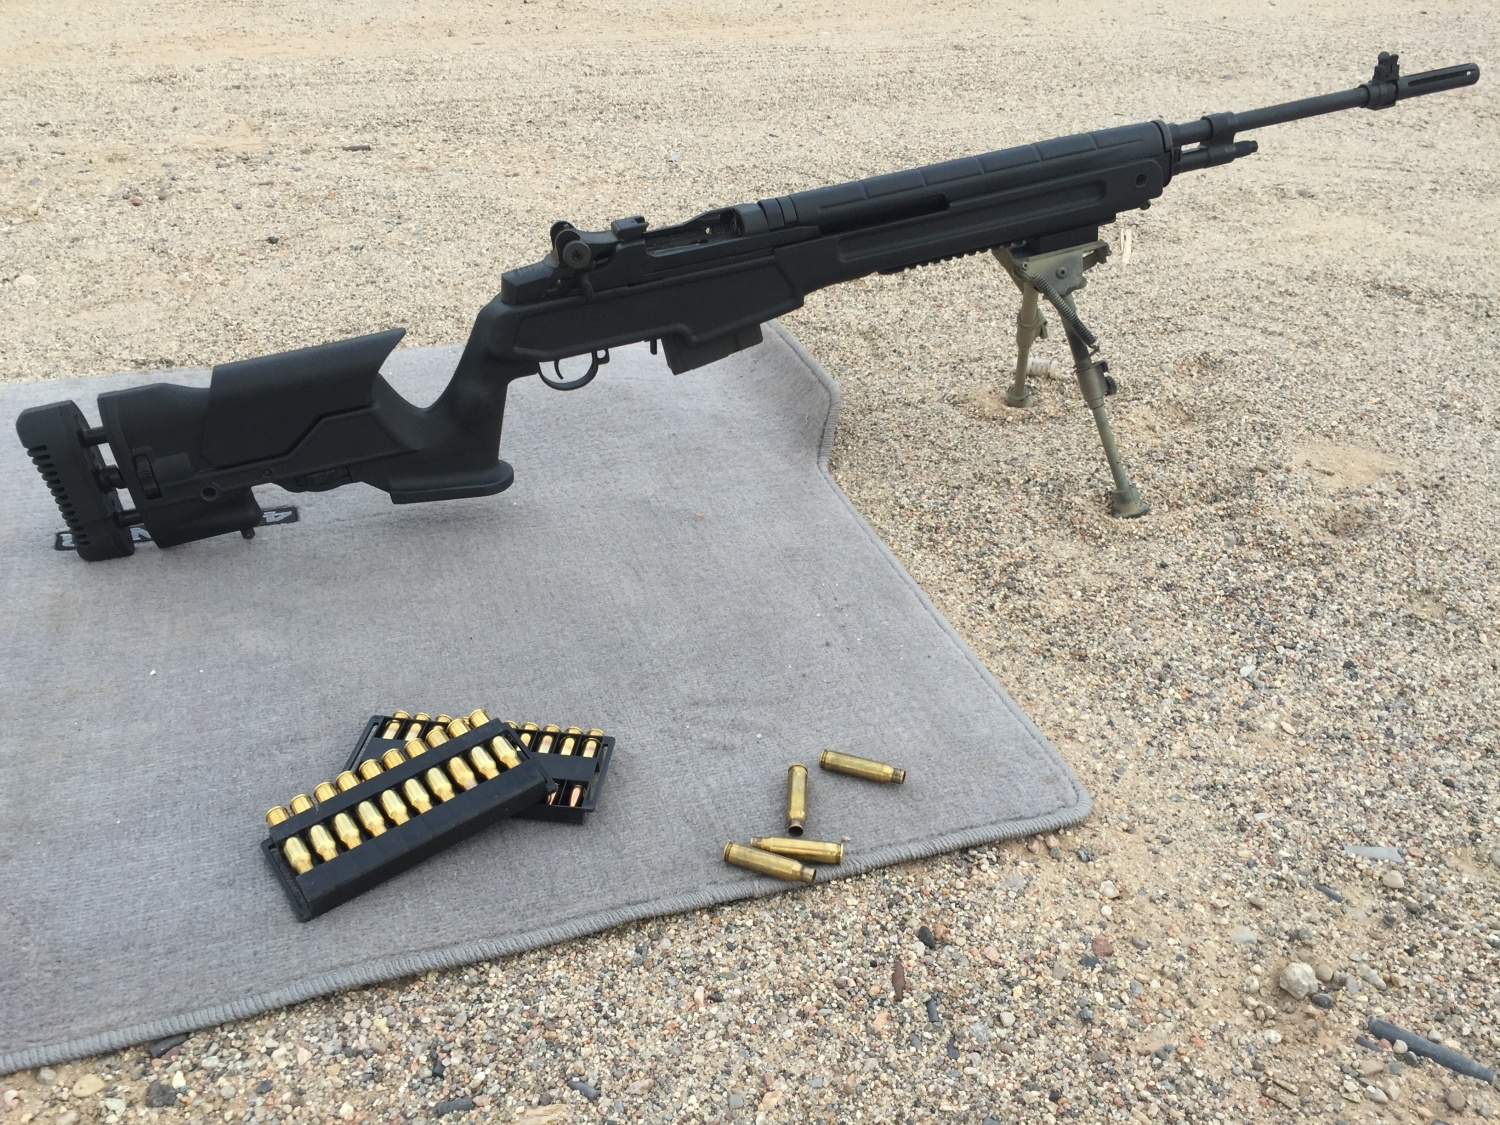 Not a bad looking rifle in my opinion.